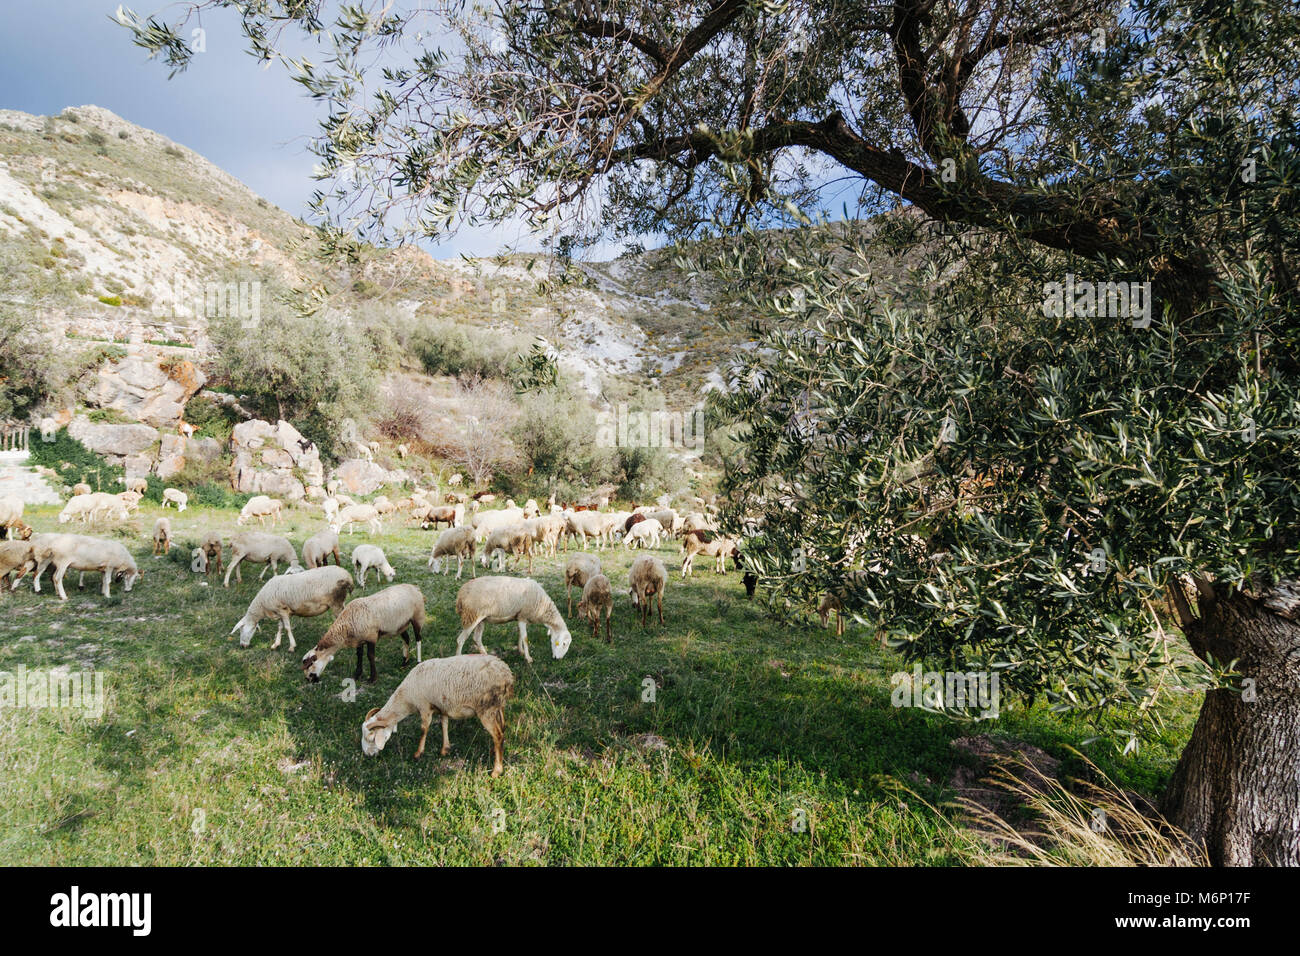 Las Alpujarras, Granada province, Andalusia, Spain :  Goats and sheeps grazing on a meadow in the Sierra Nevada - Stock Image